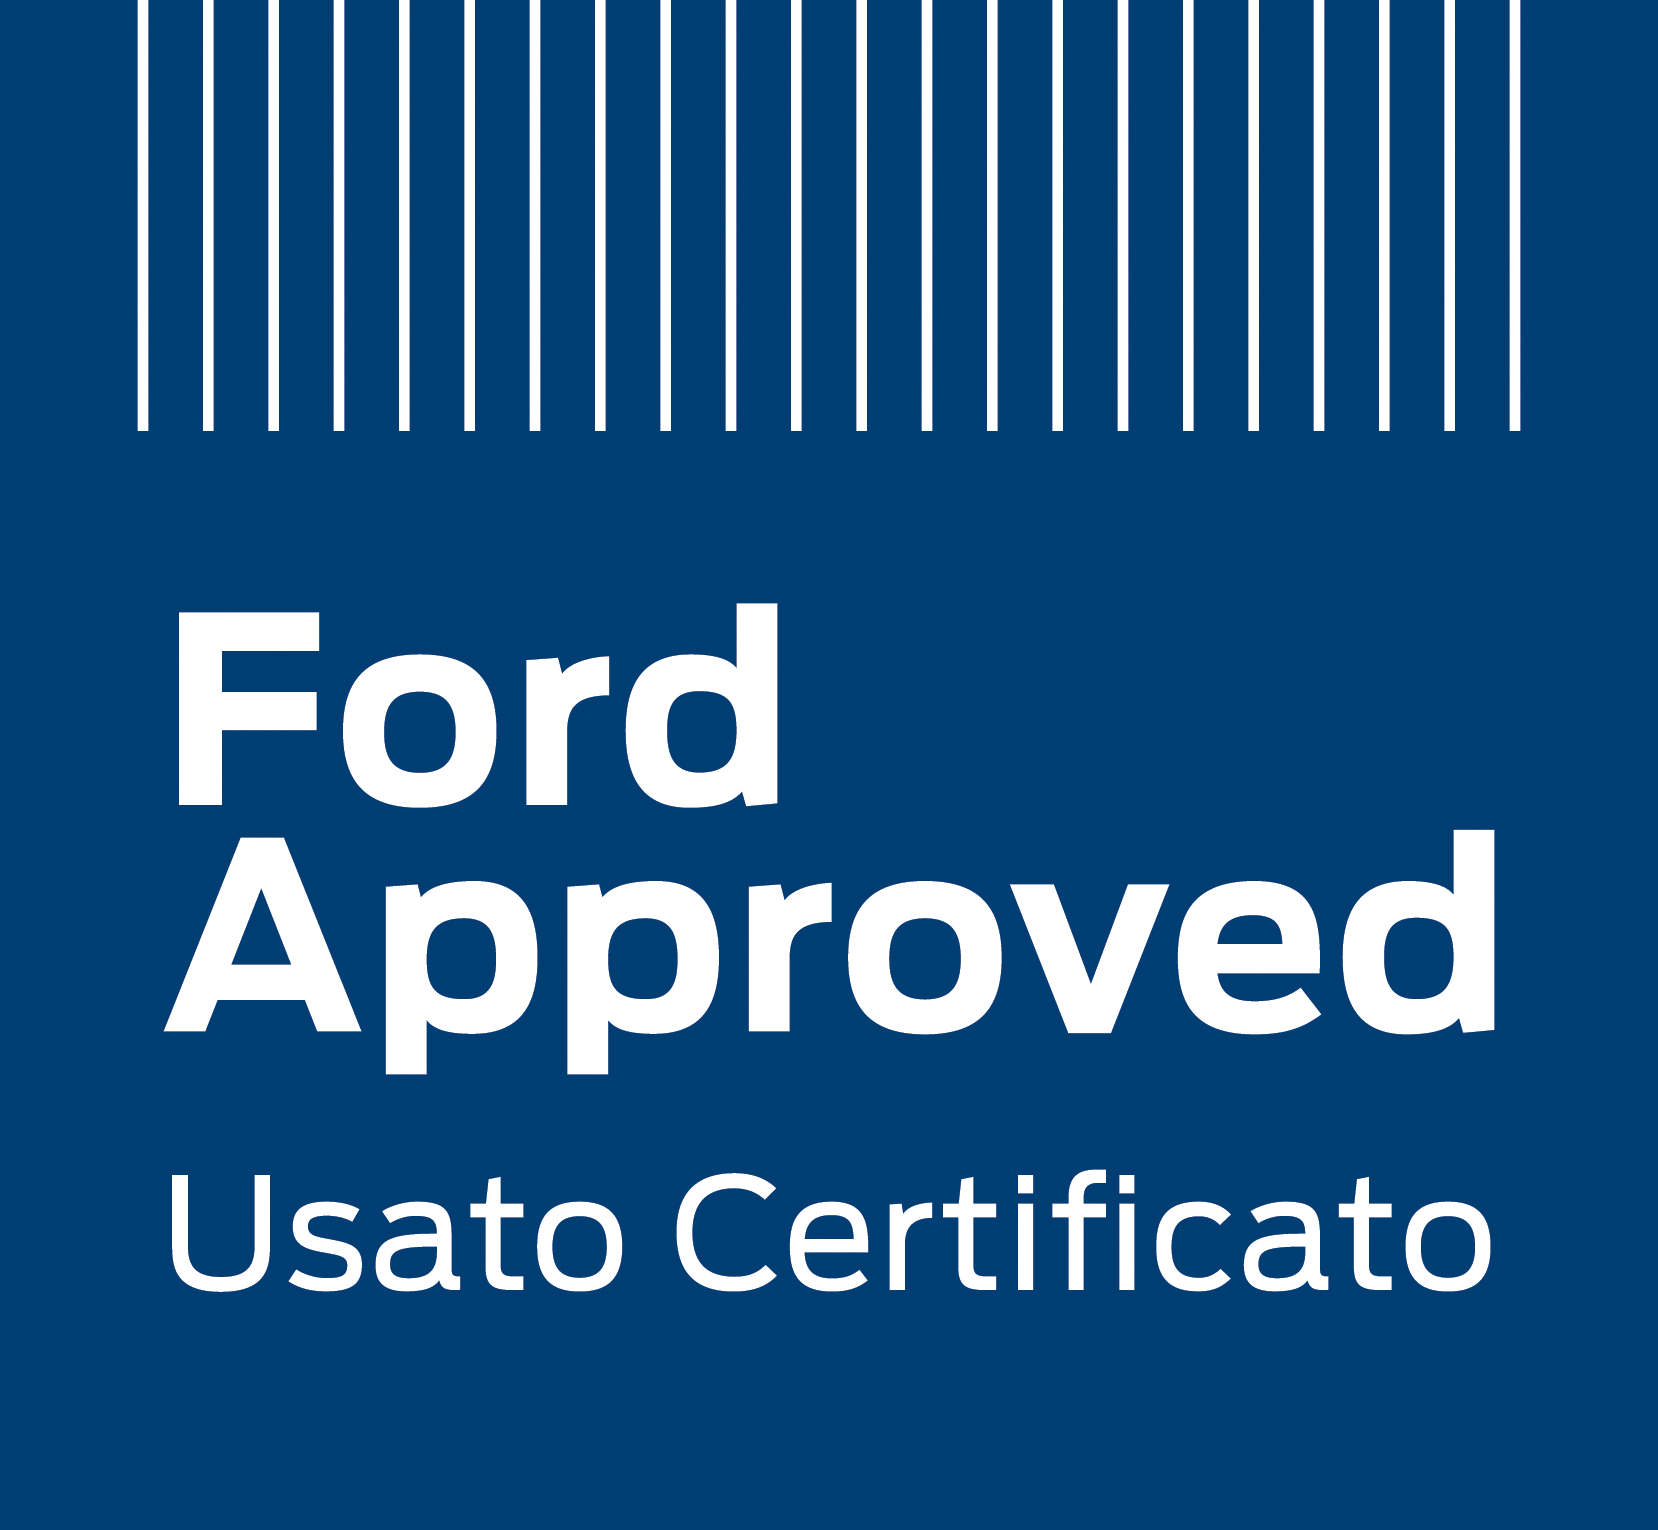 Ford Approved Usato Certificato